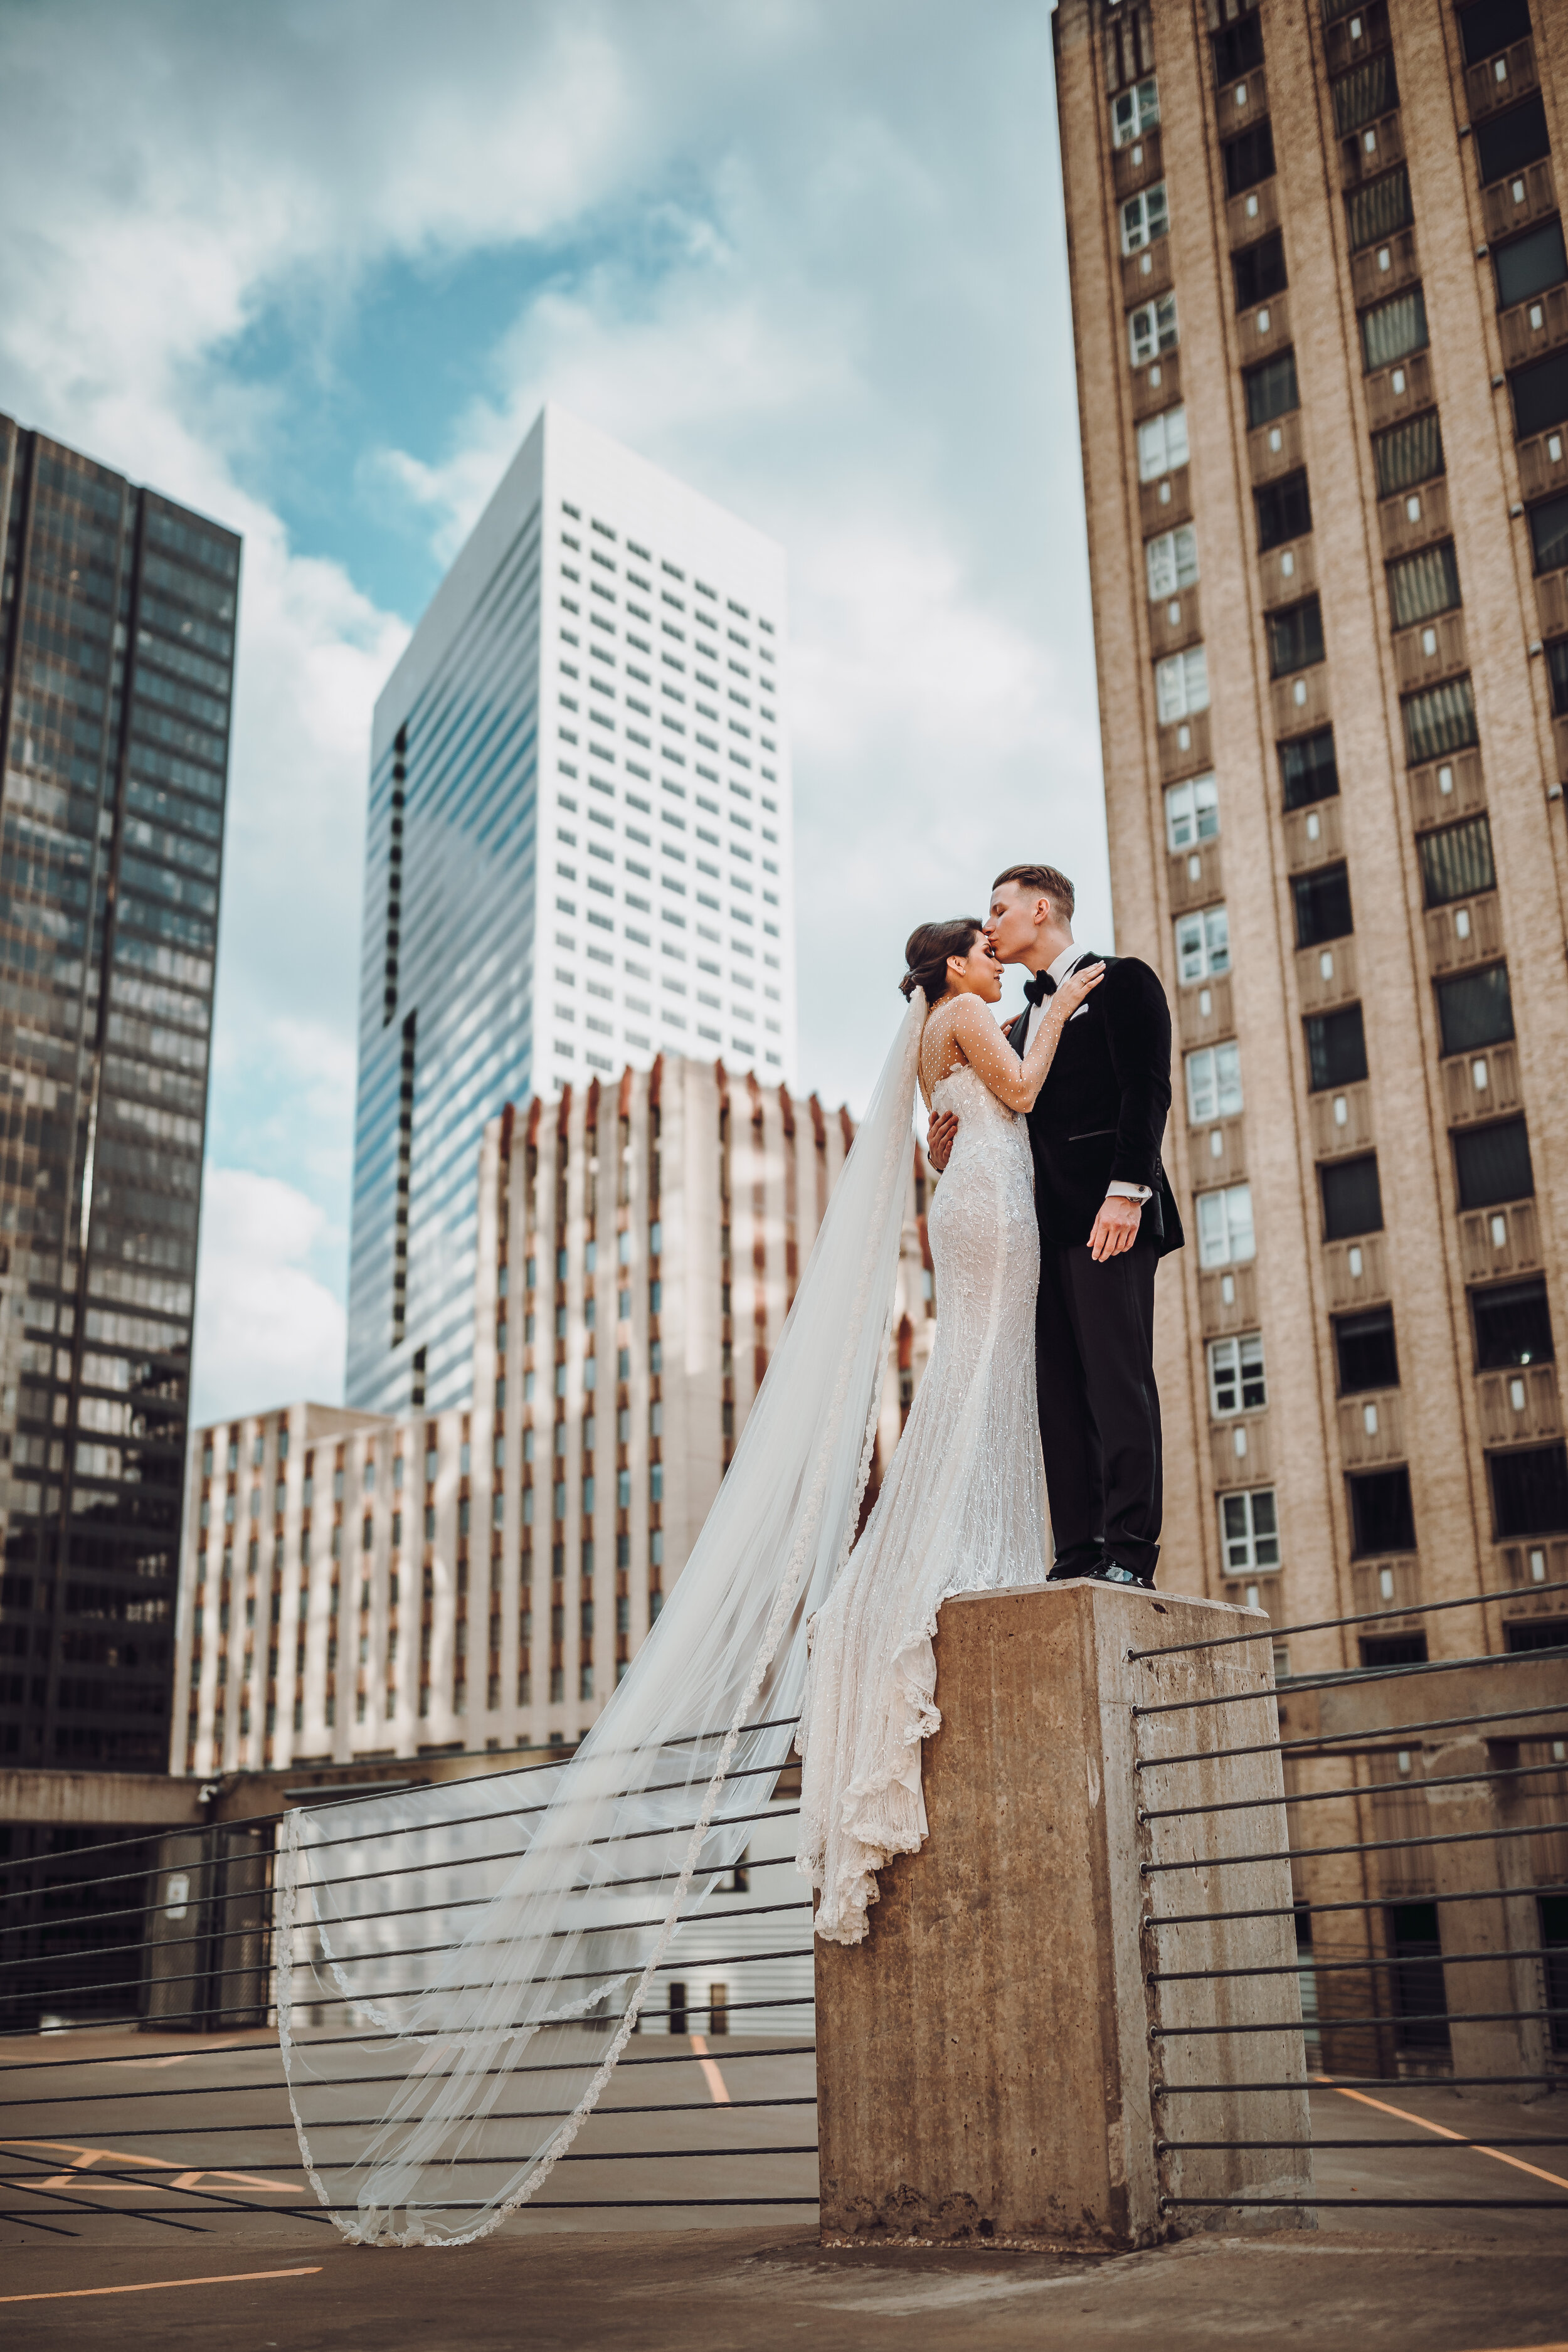 Houston Wedding Planner Piper & Muse